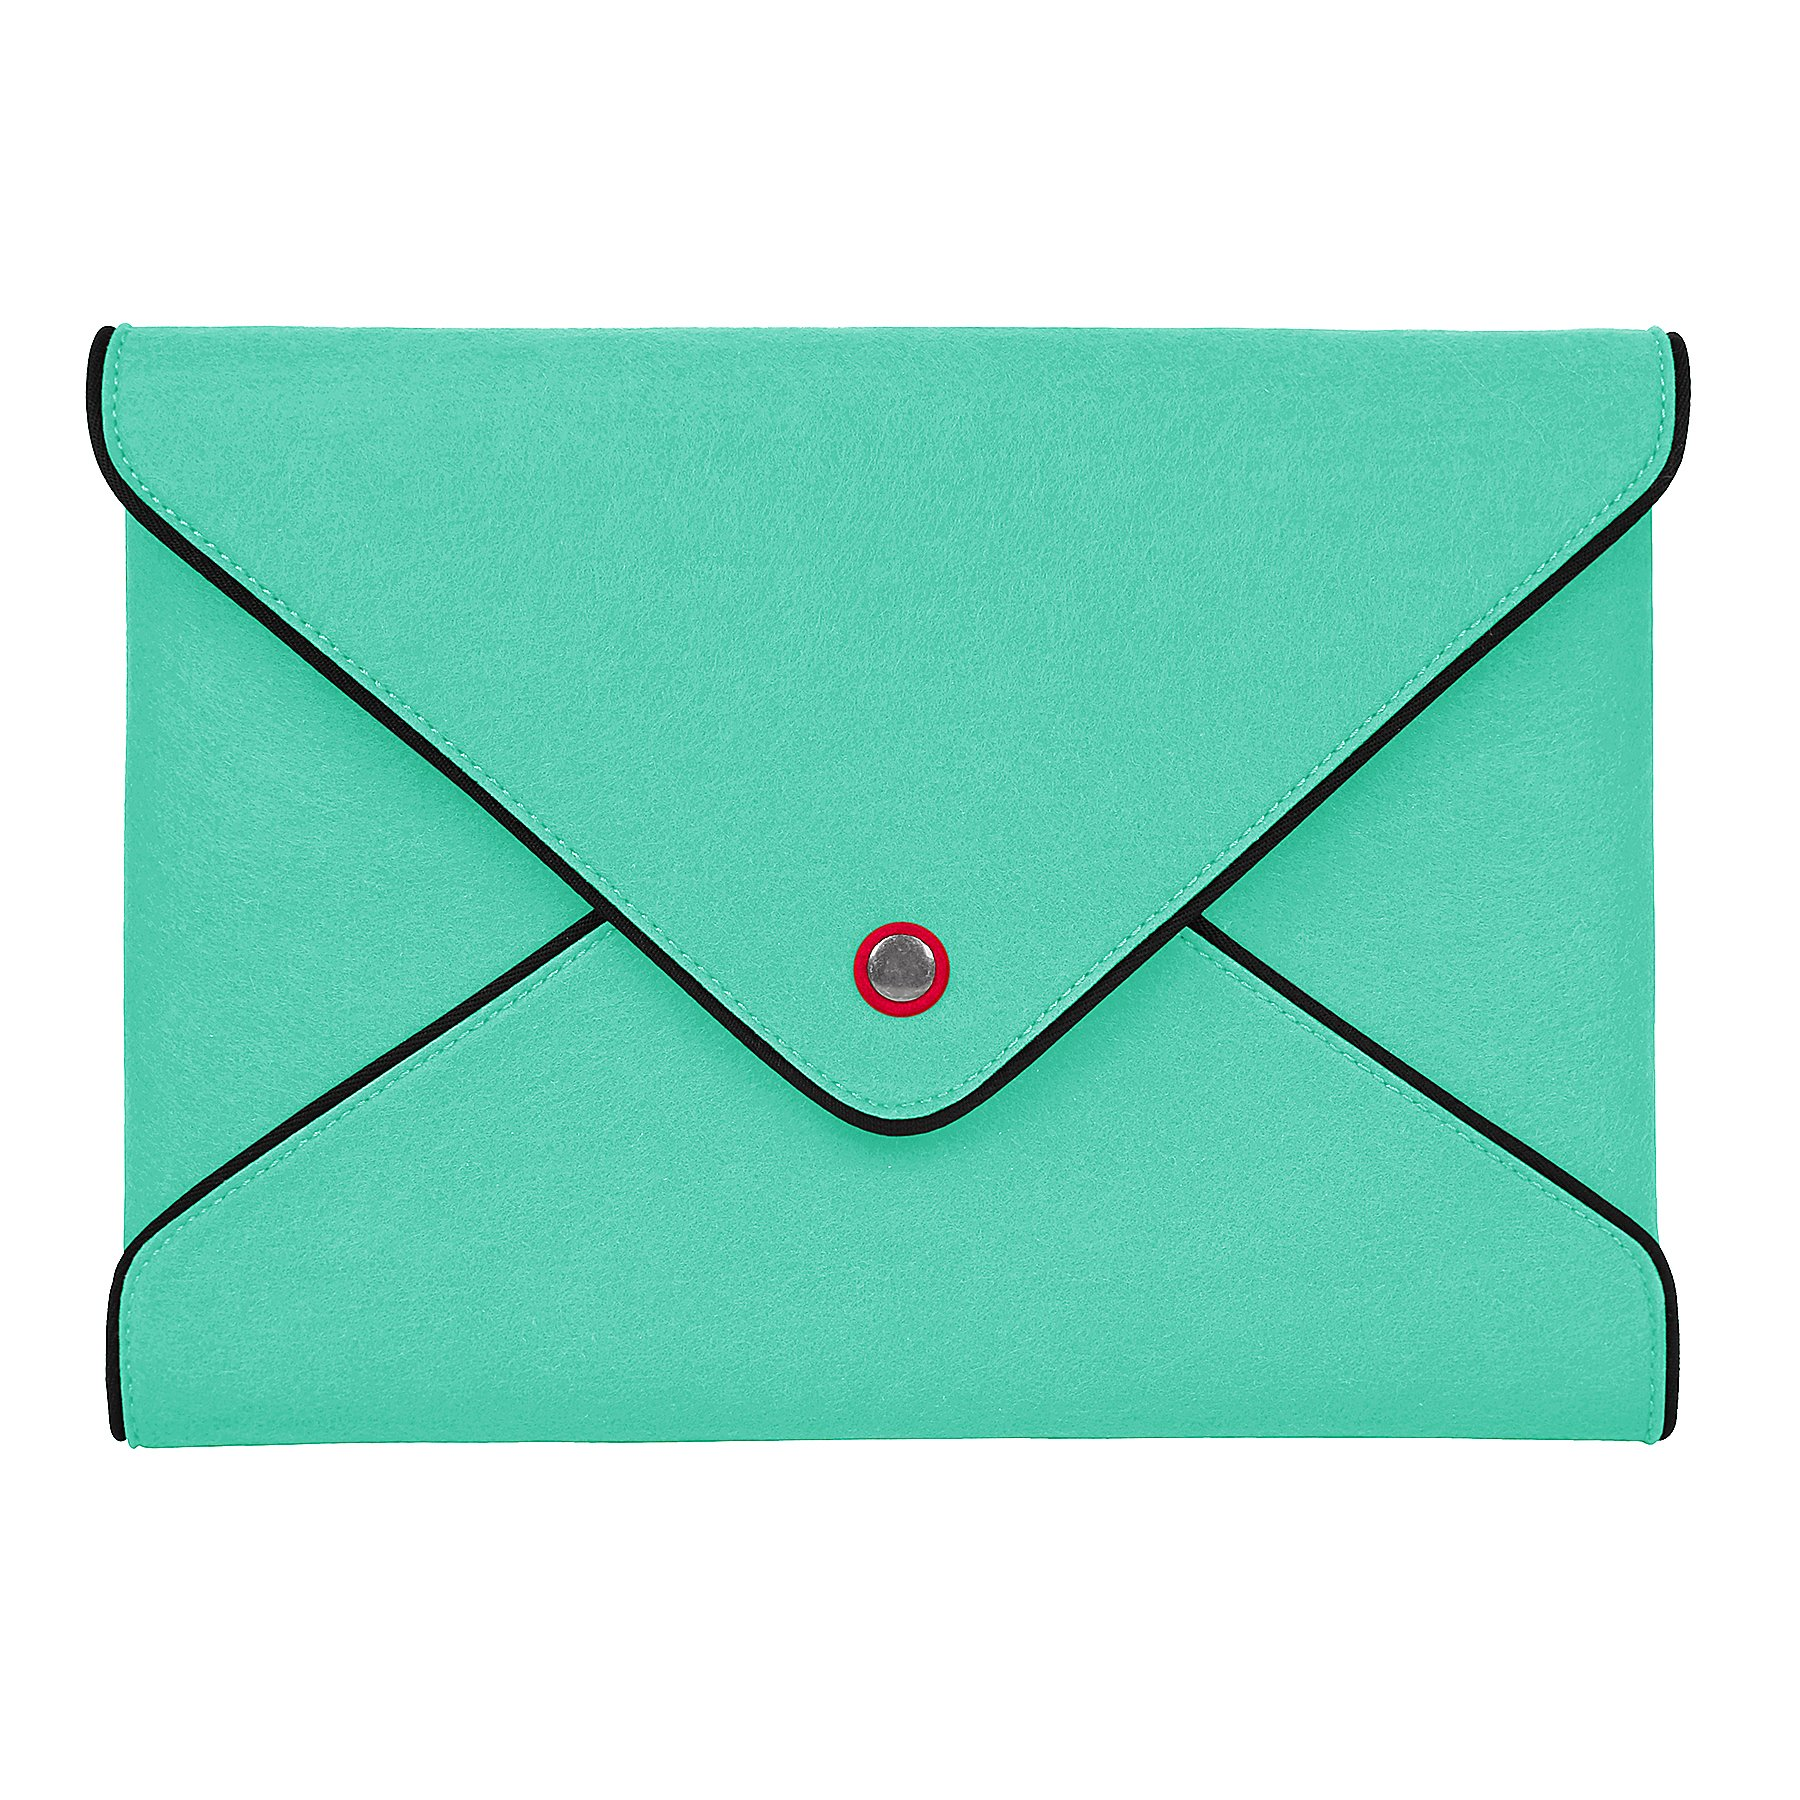 TOPHOME 13-13.3 Inch Laptop Sleeve Case Business Office Bag Ultrabook Sleeve Compatible for MacBook Air 13 Mac pro 13 iPad pro/Tablet/Laptop Blue